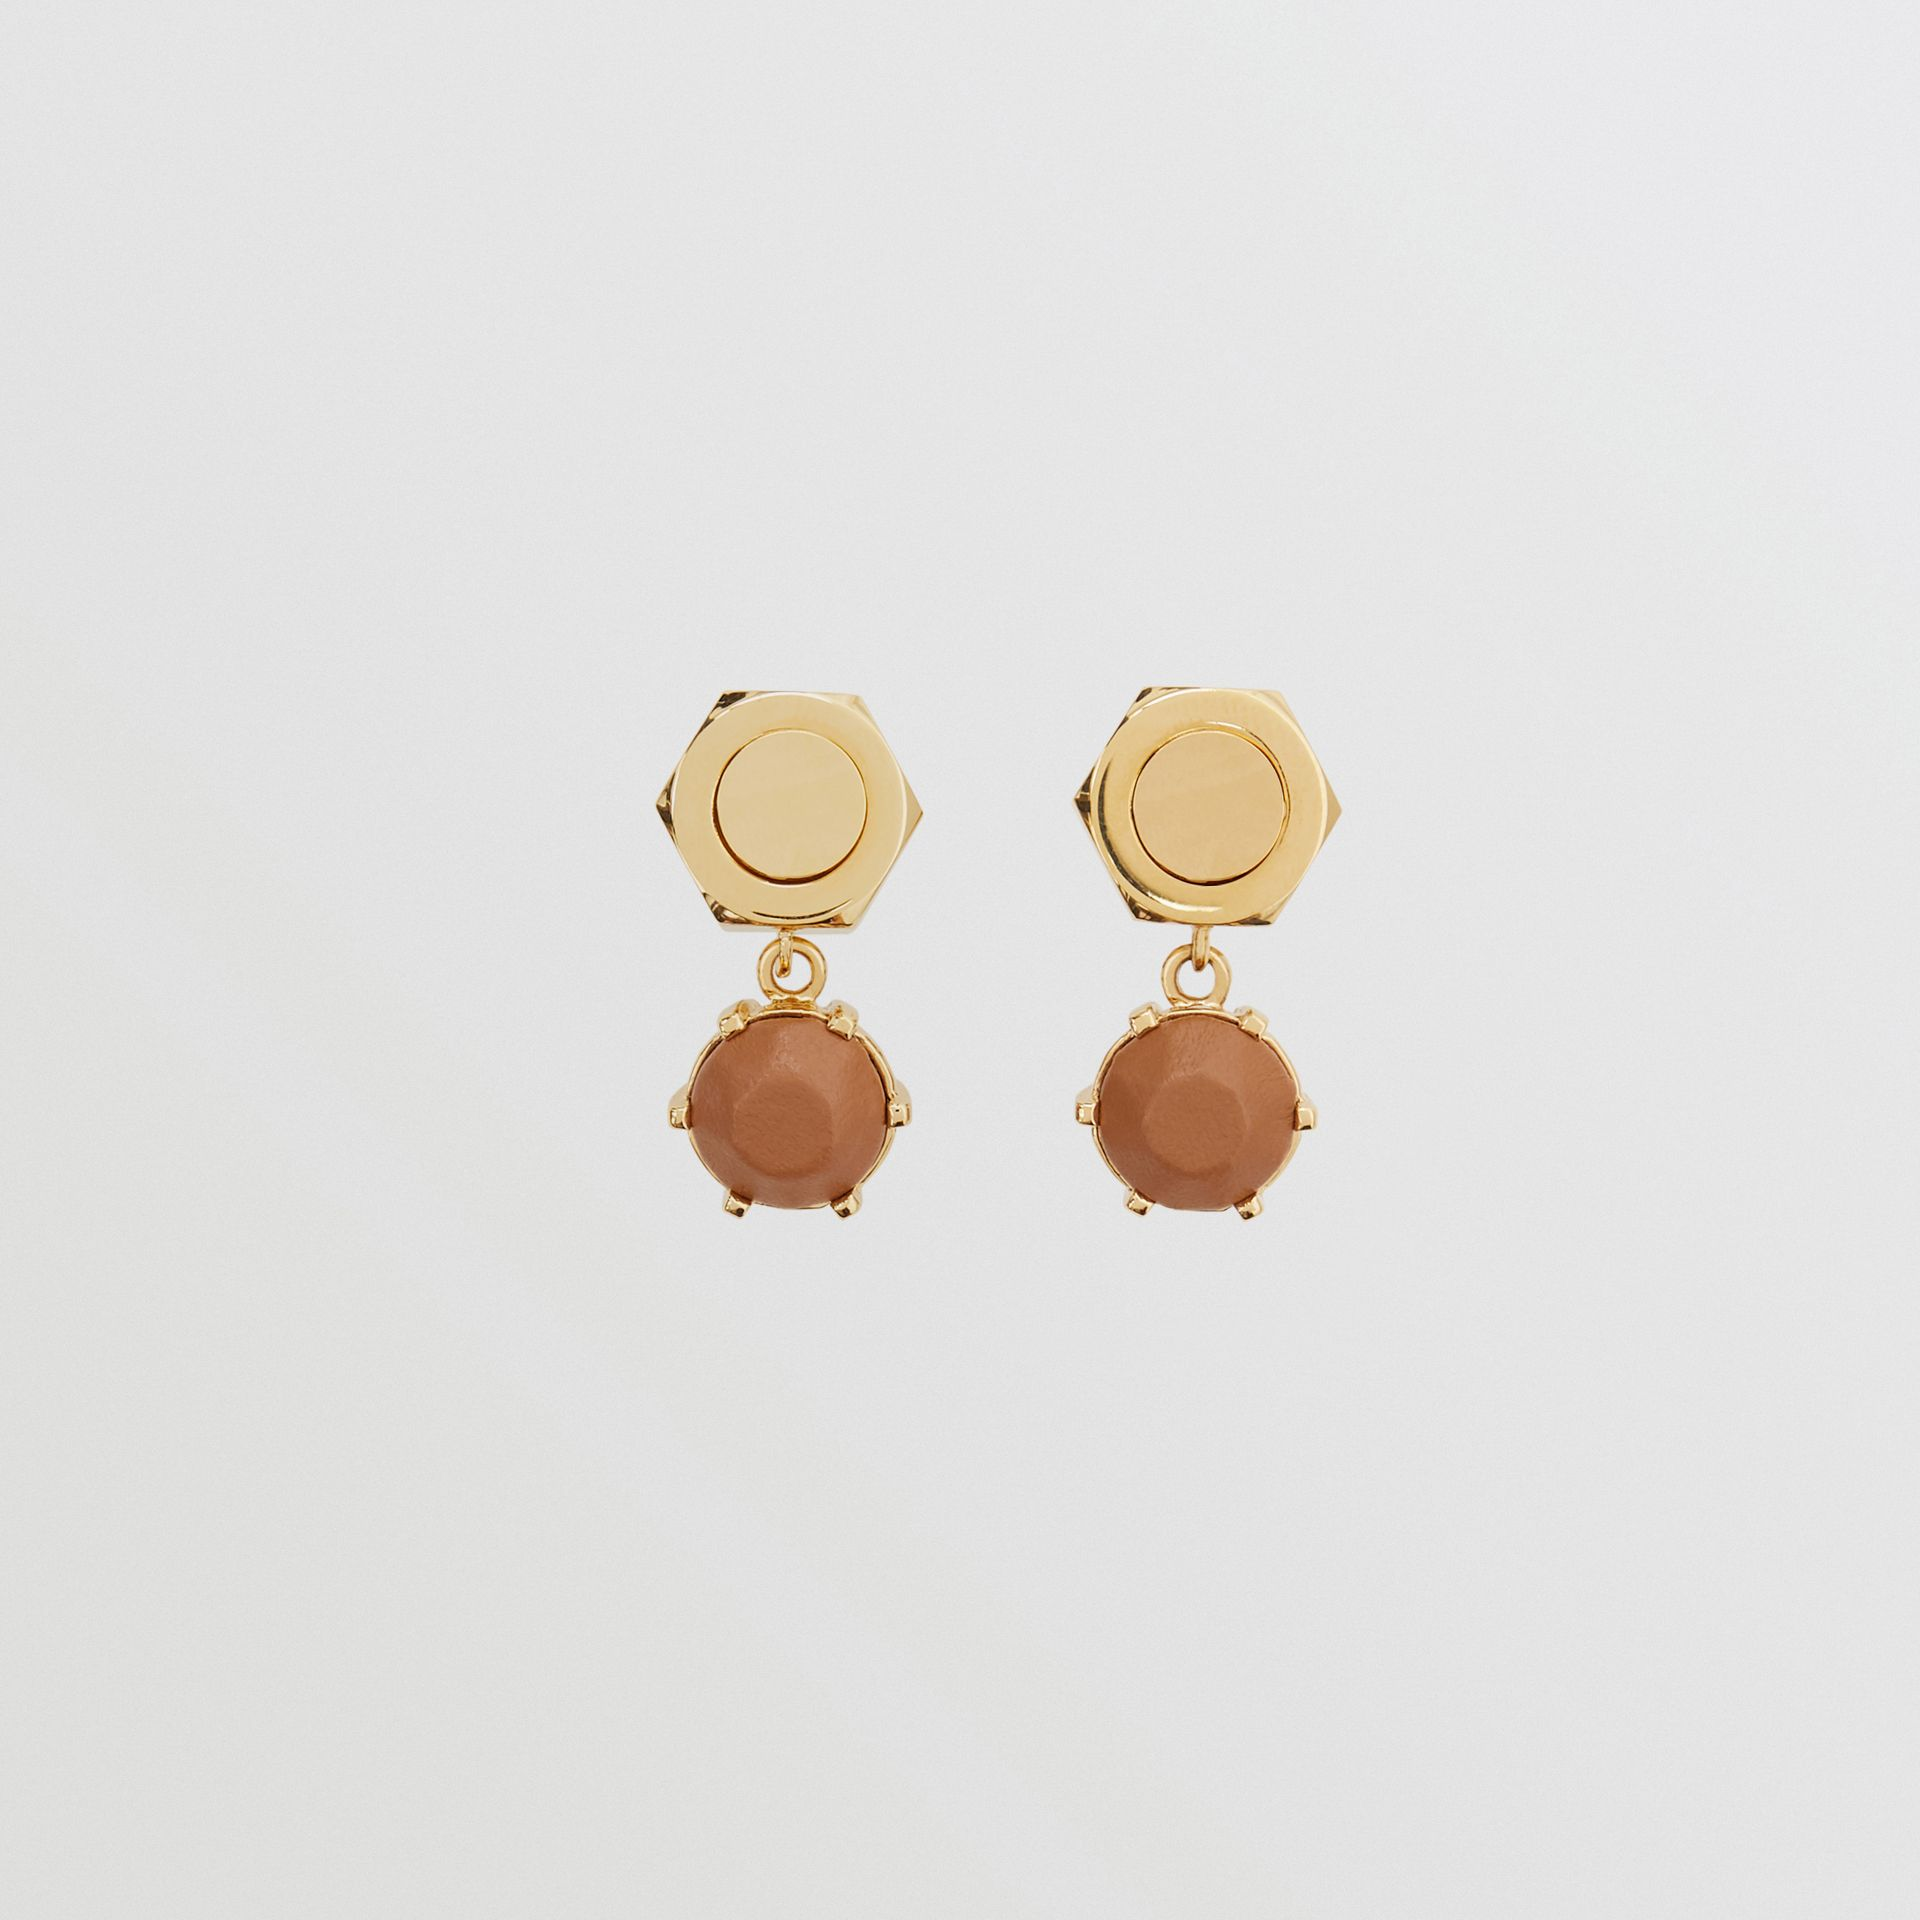 Leather Charm Gold-plated Nut and Bolt Earrings in Nutmeg/light - Women | Burberry - gallery image 0